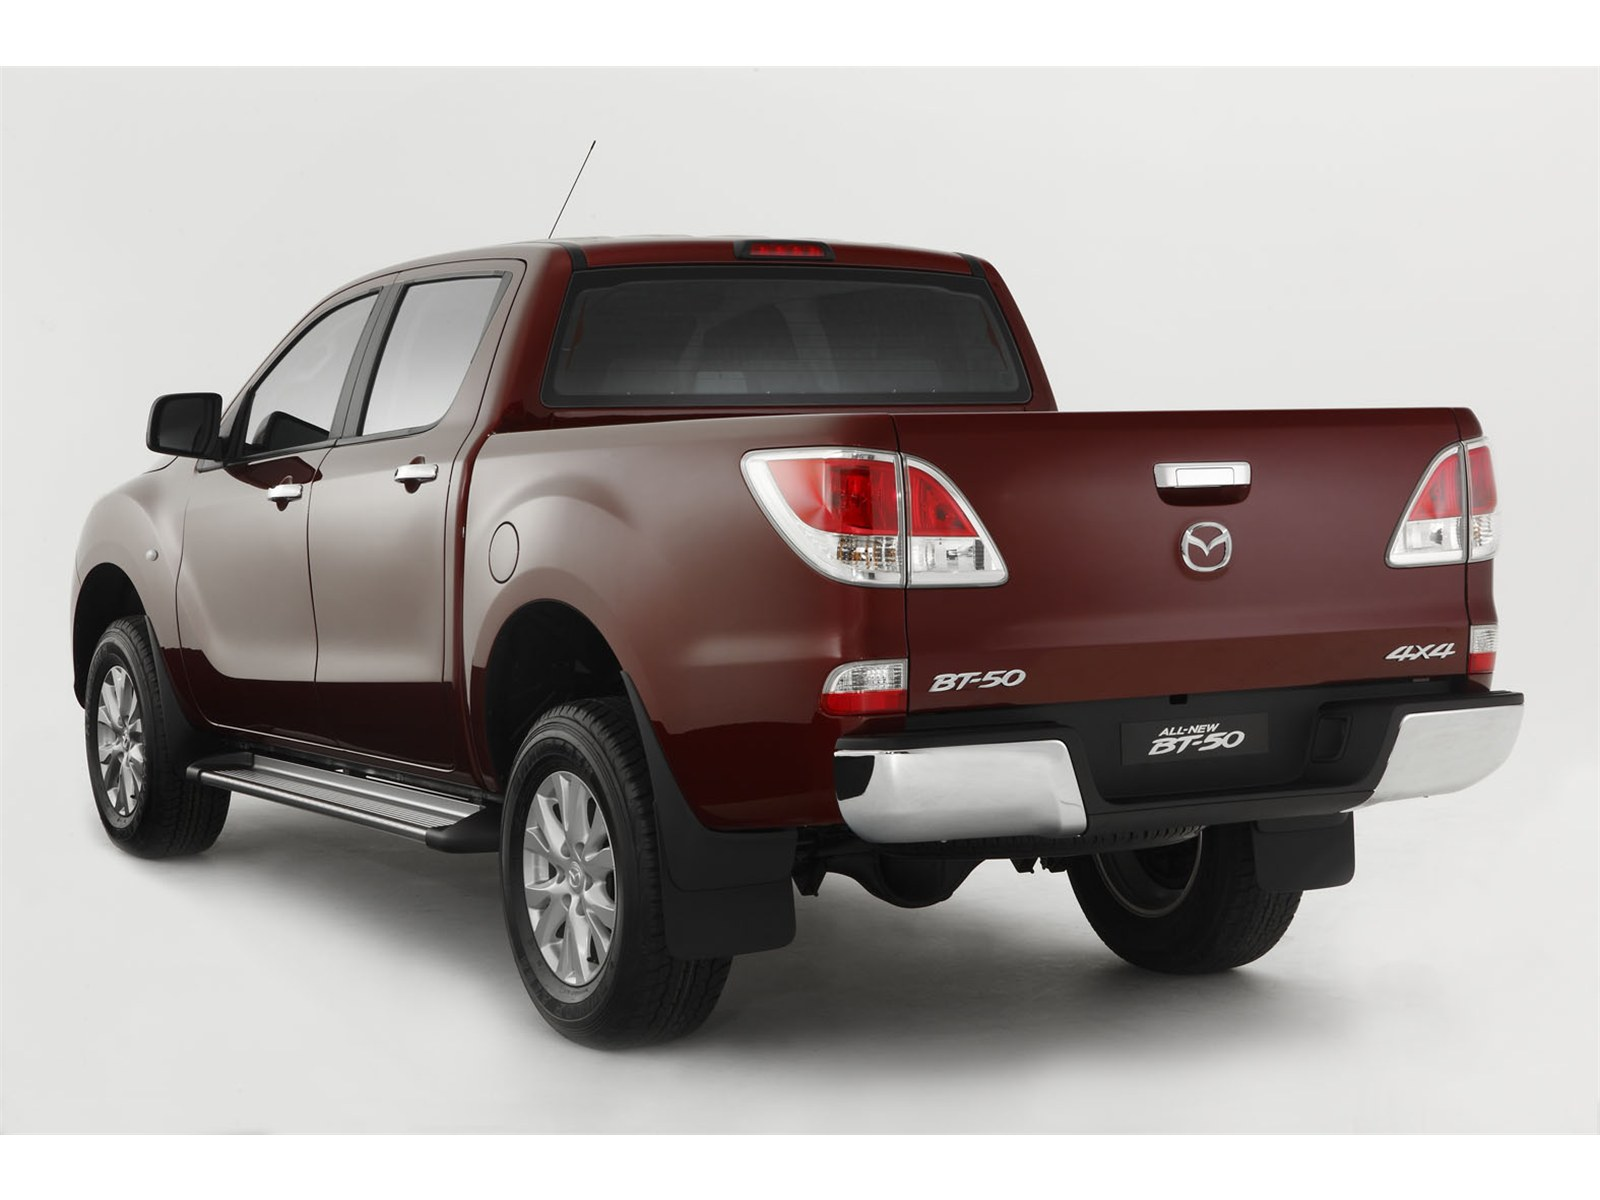 View Download Wallpaper. 1600x1067. Comments. Mazda BT-50 25 Di Turbo 4x4